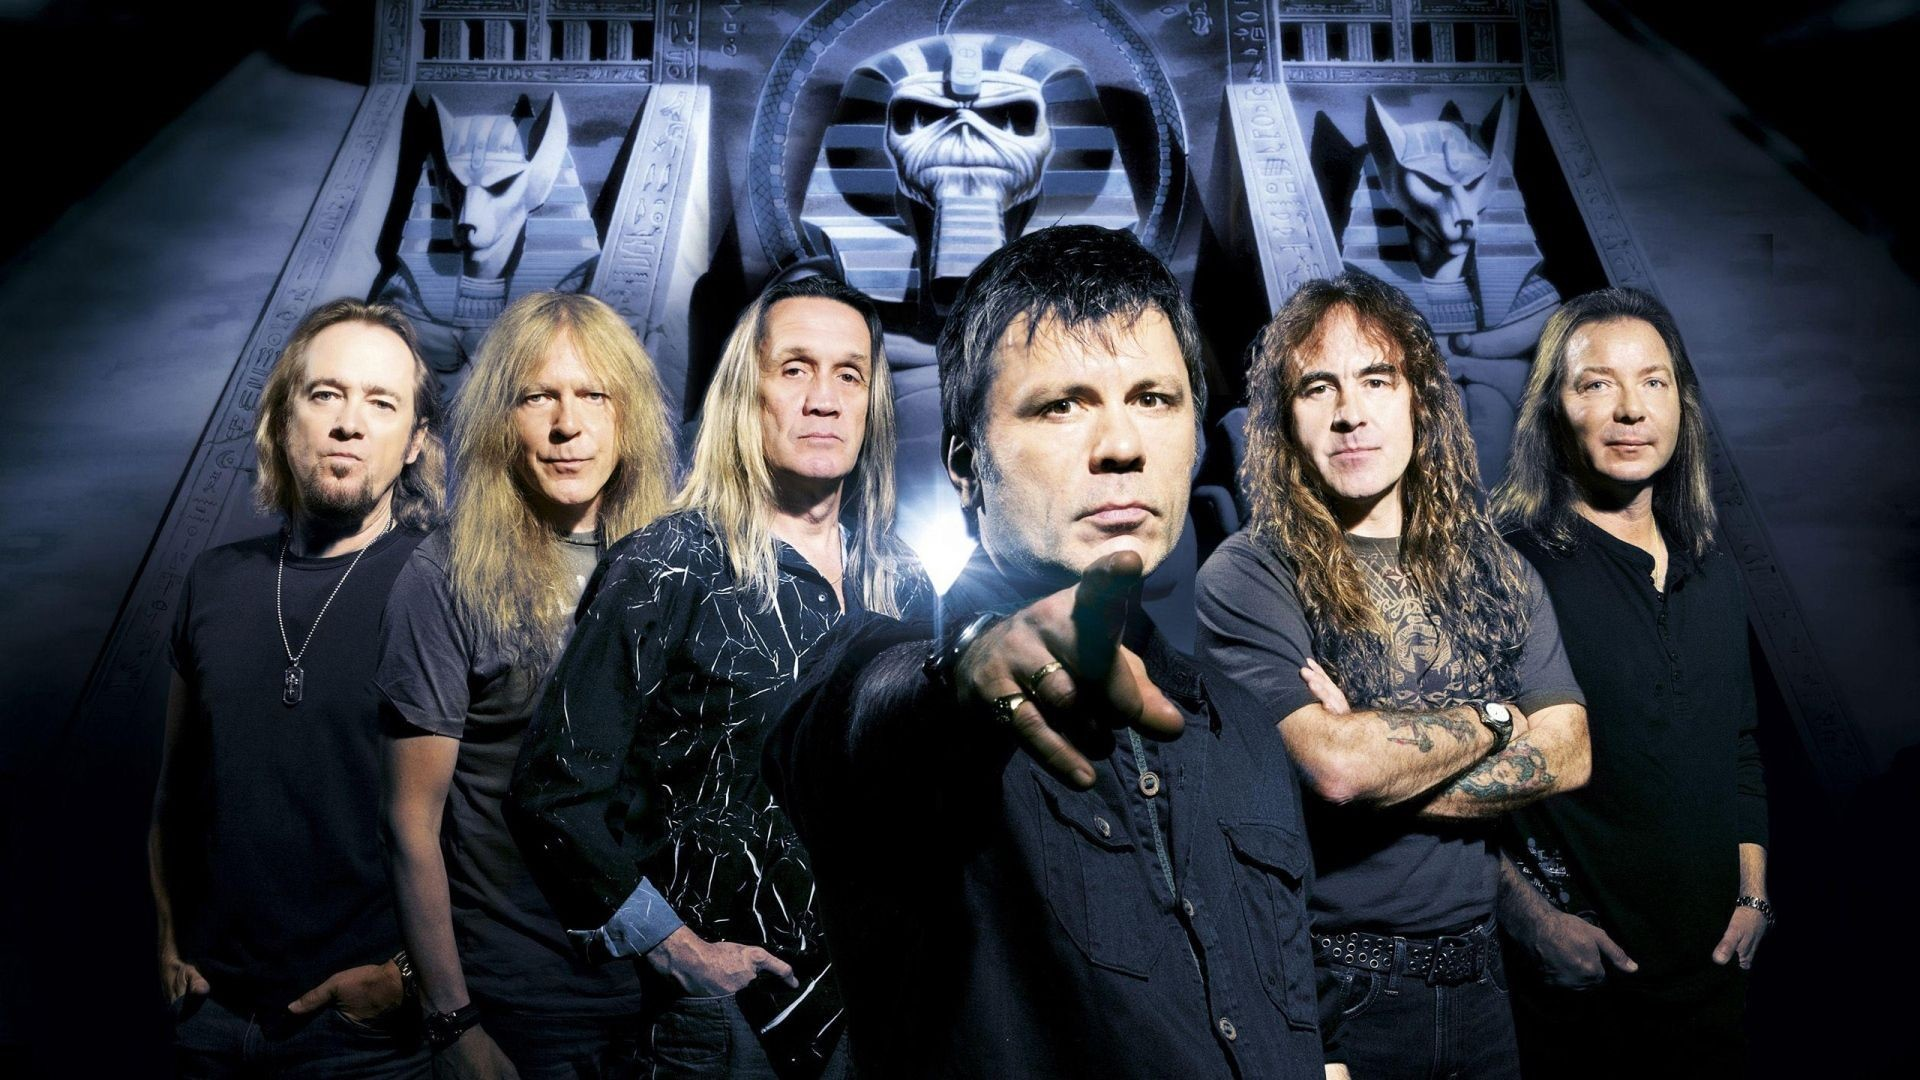 Download Wallpaper Iron maiden, Band, Members, Look .